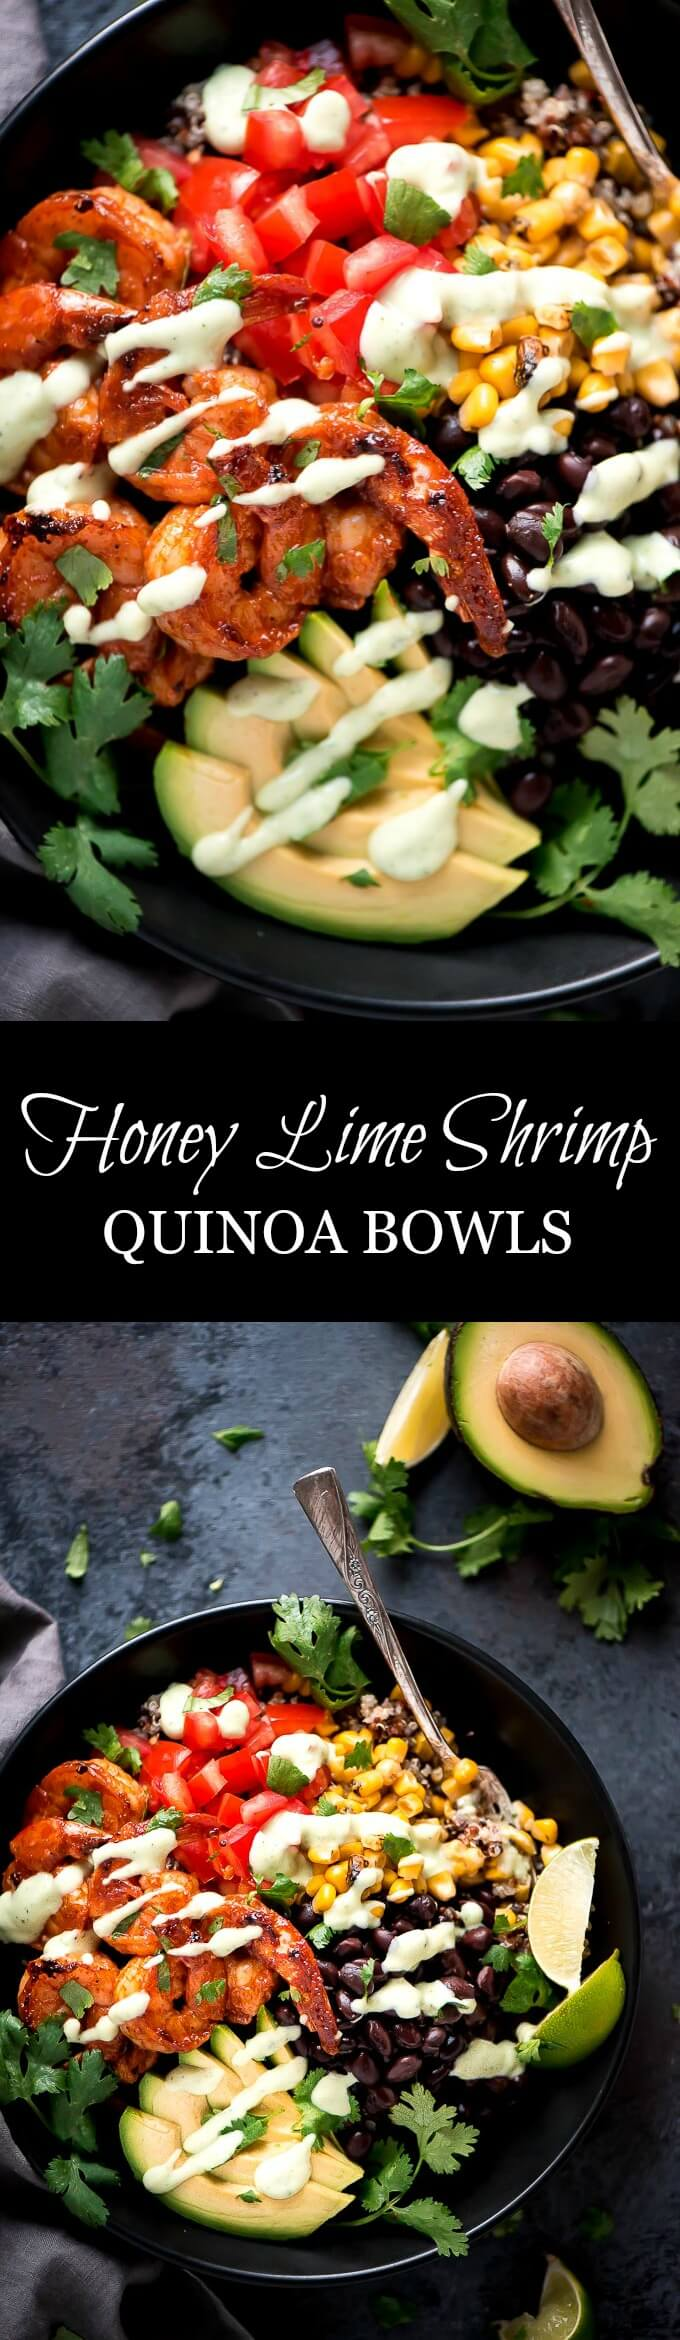 Feed your family a quick and healthy meal with these Honey Lime Shrimp Quinoa Bowls topped with Avocado Dressing. Shrimp never tasted so good!